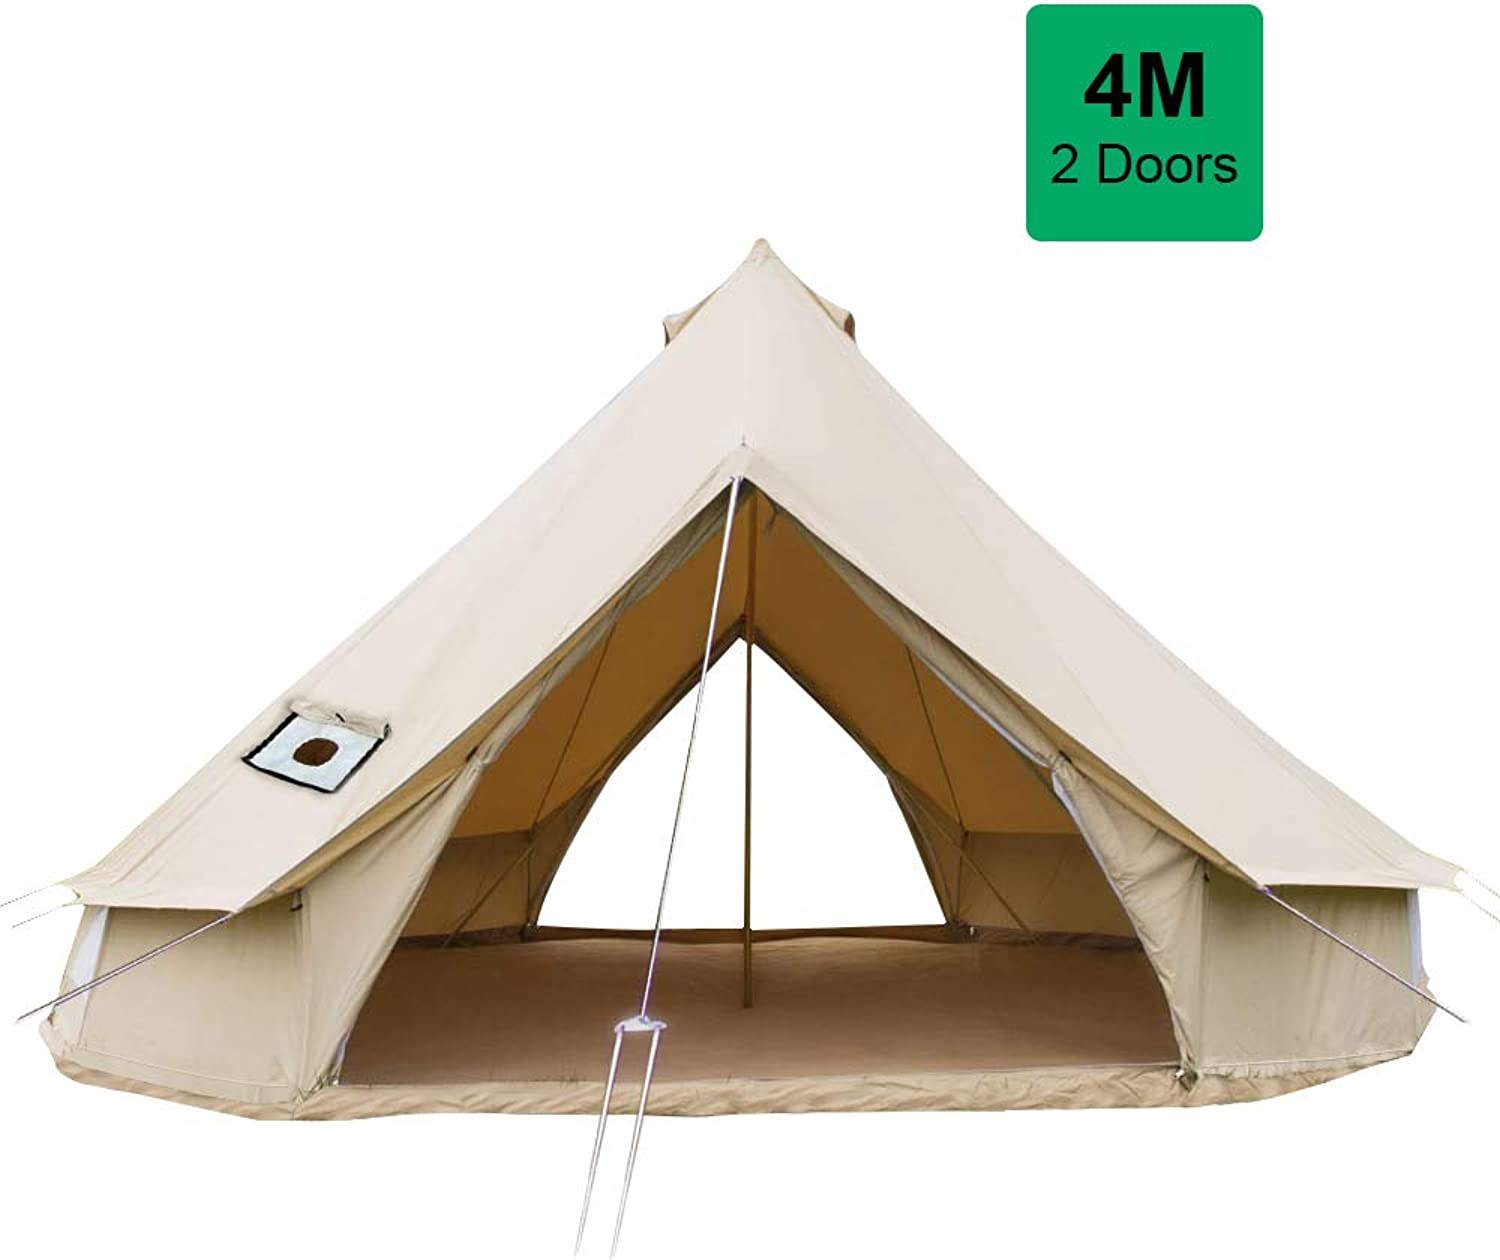 PlayDo 4M Waterproof Glamping 2 Doors Cotton Canvas Bell Tent Family Yurts Tent Wall Tent with Stove Hole for 46 Persons Camping Hunting Party